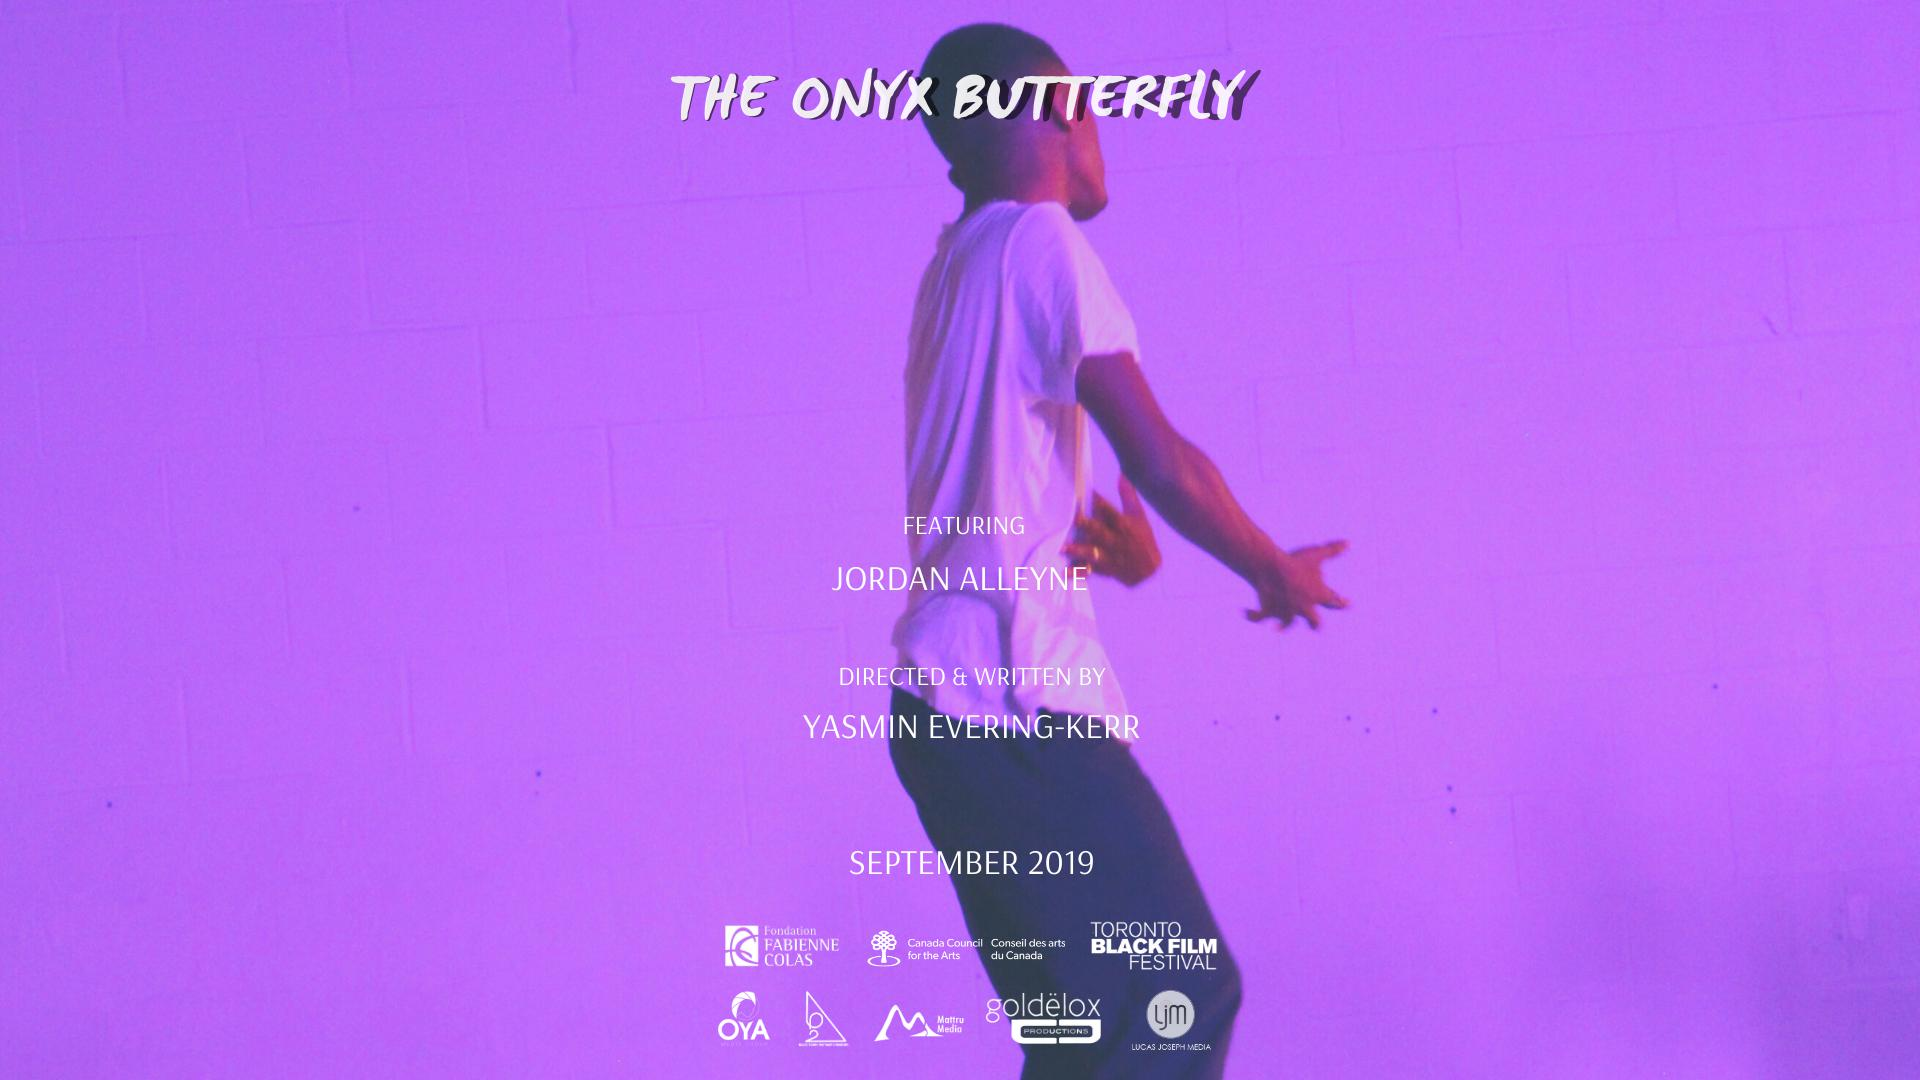 The Onyx Butterfly